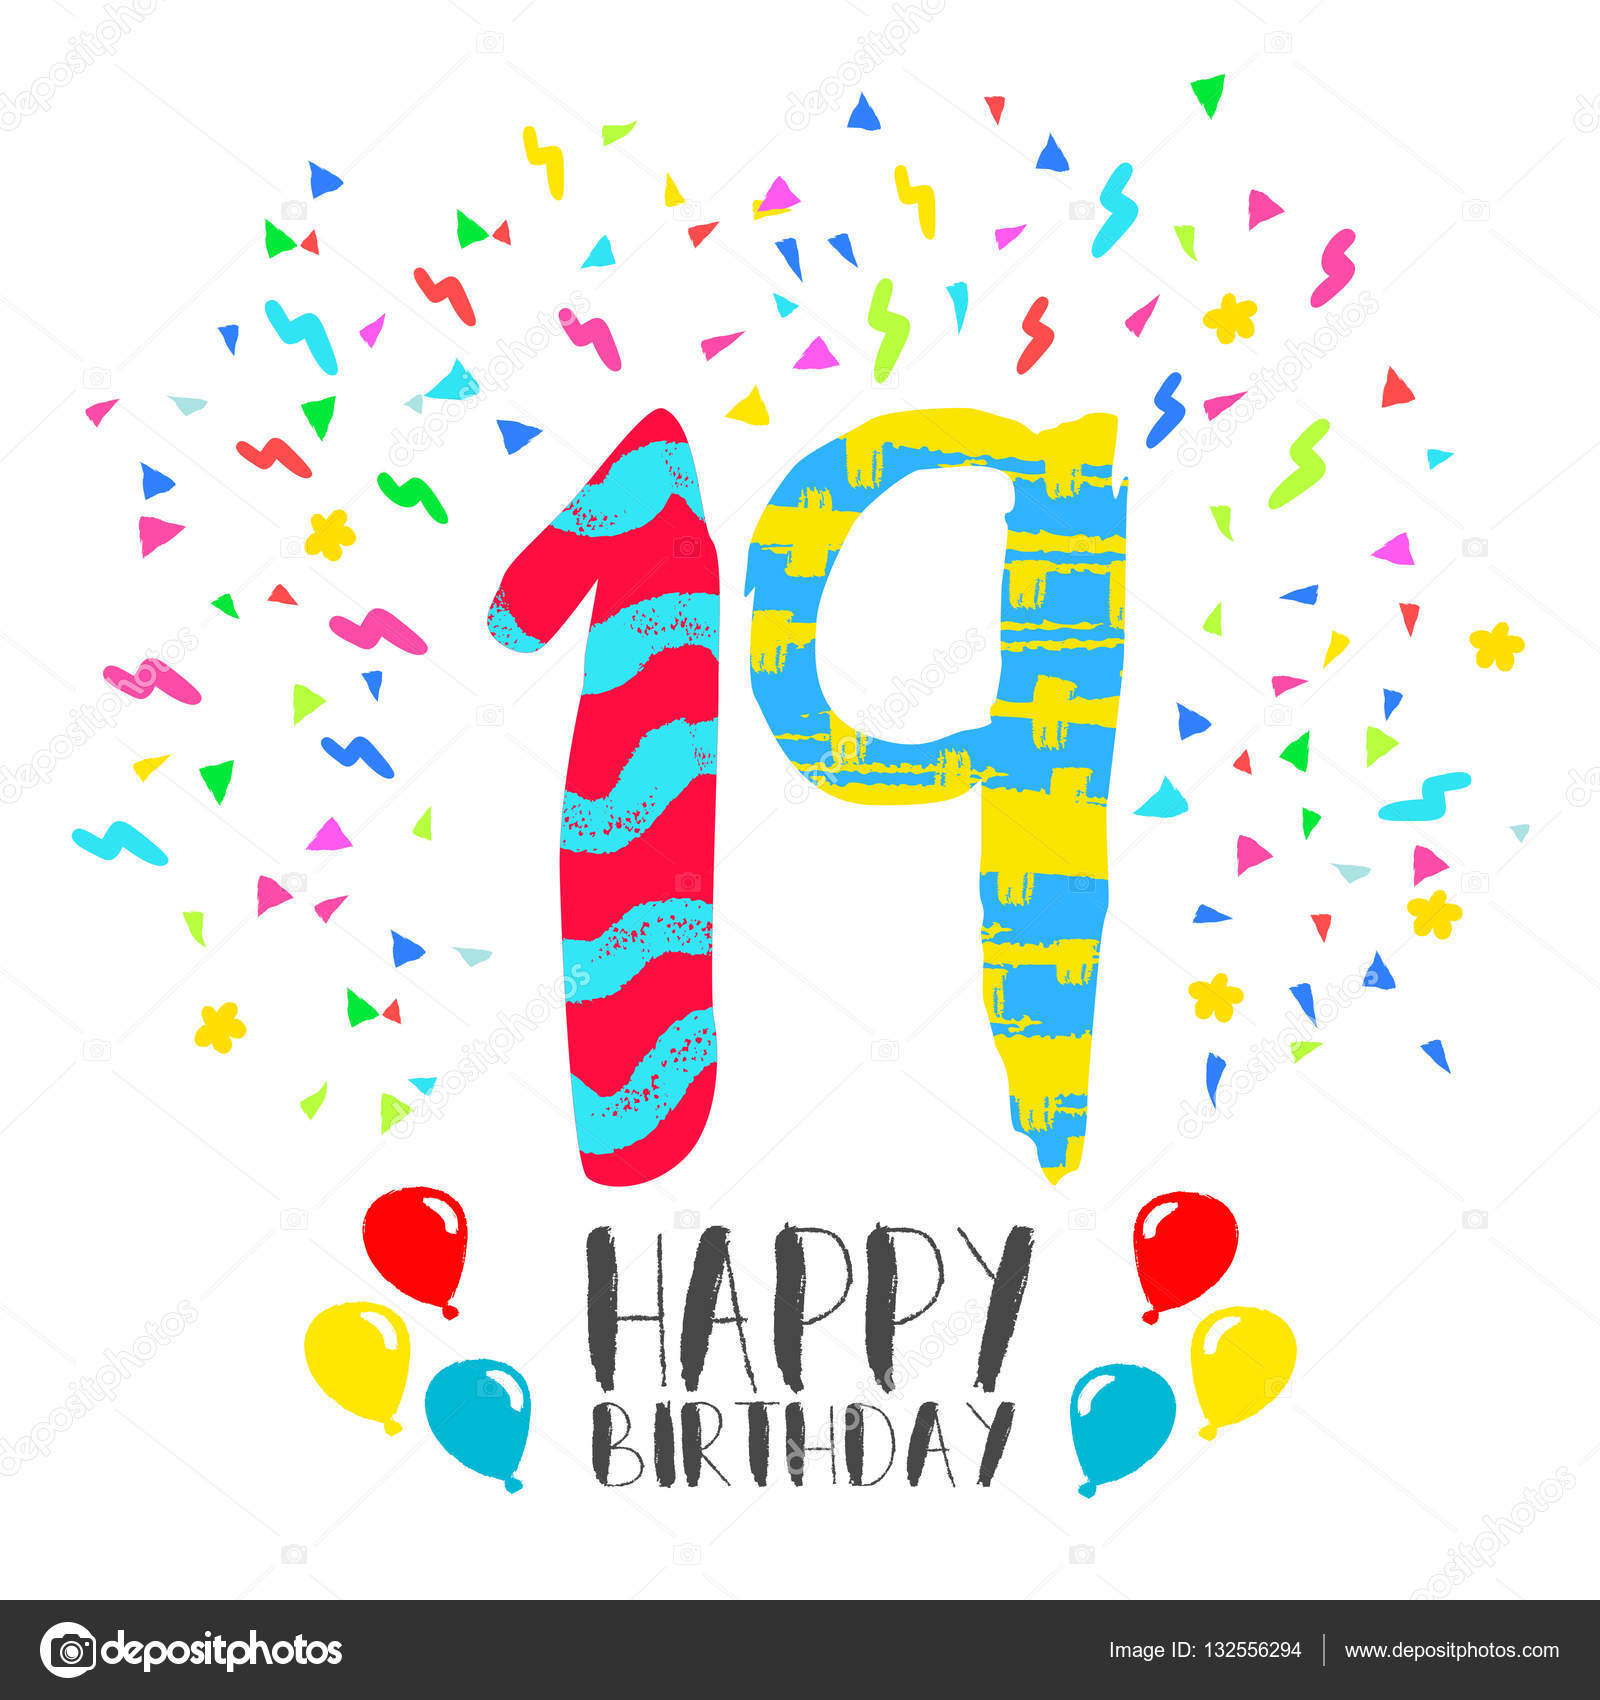 19 Afl Teams Round 19 Dogum Gunu 19 Yas Pictures Free  : depositphotos132556294 stock illustration happy birthday for 19 year from favorsngifts.com size 1600 x 1700 jpeg 233kB